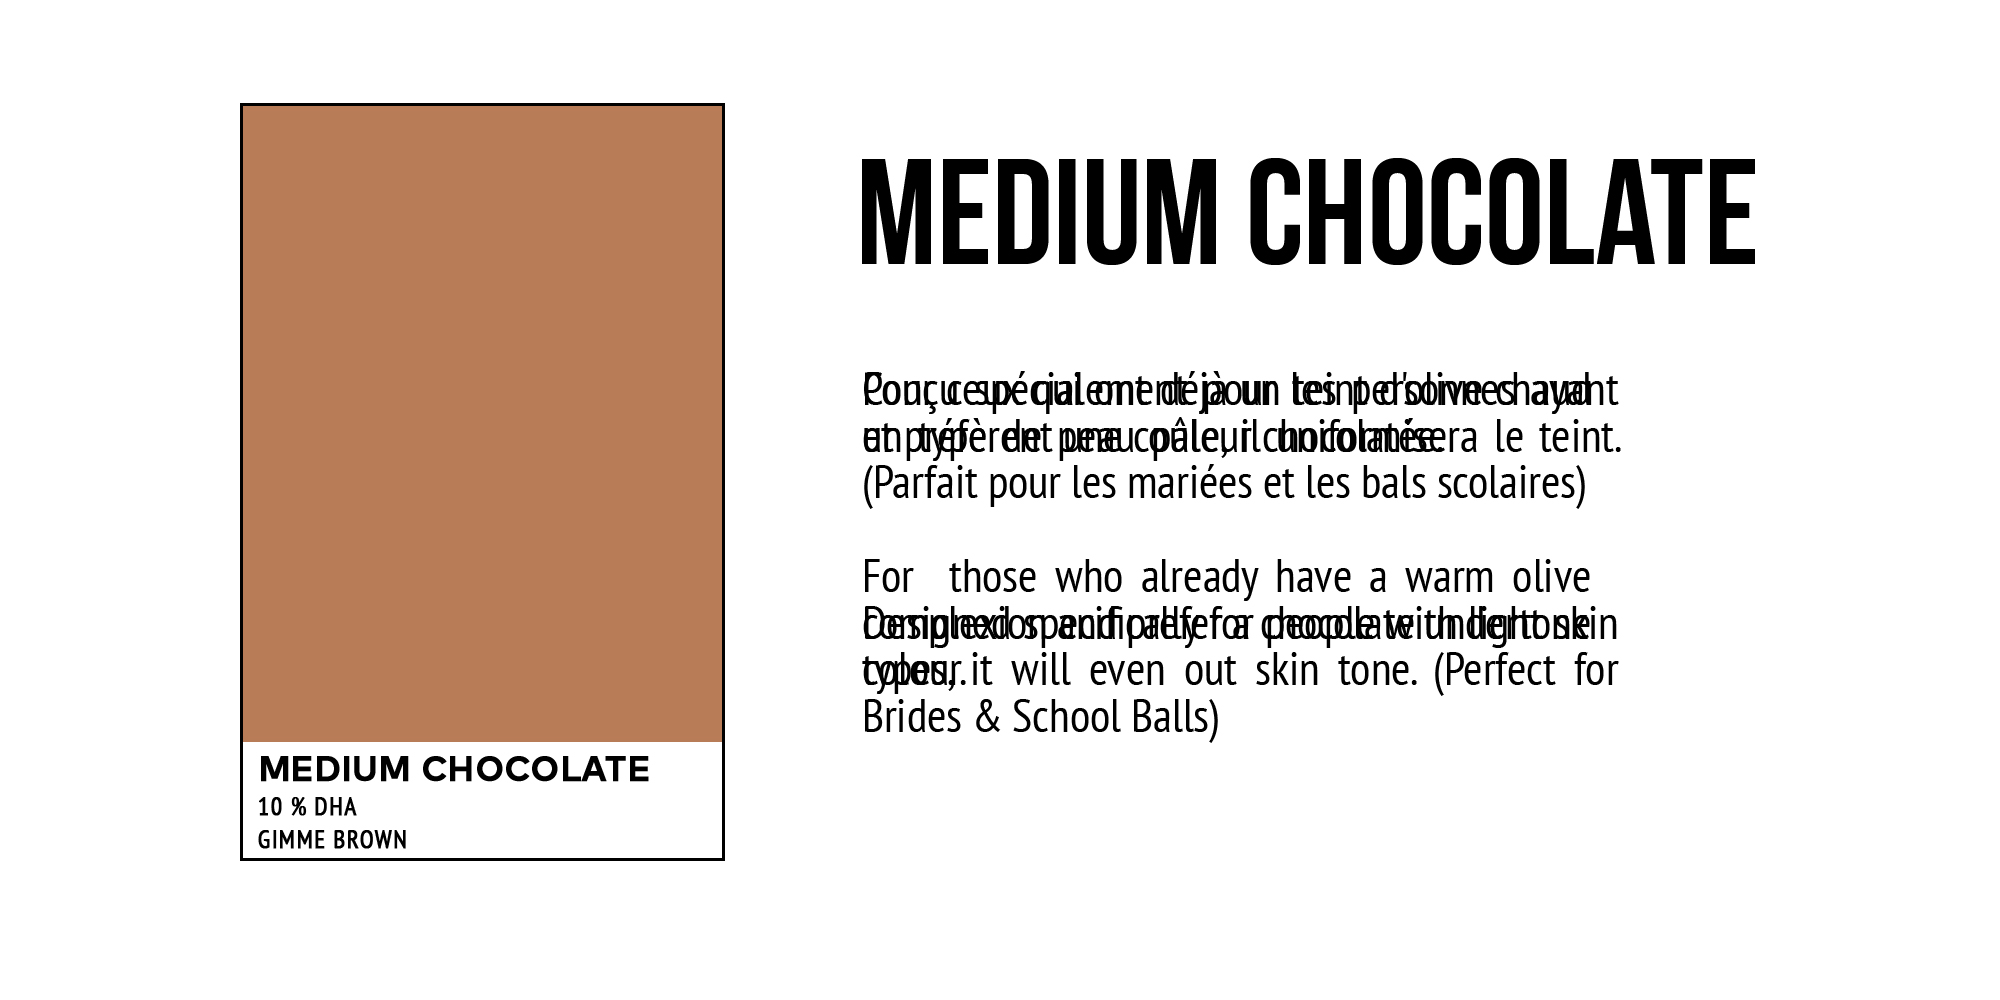 6 MEDIUM CHOCOLATE DESCRIPTION.jpg